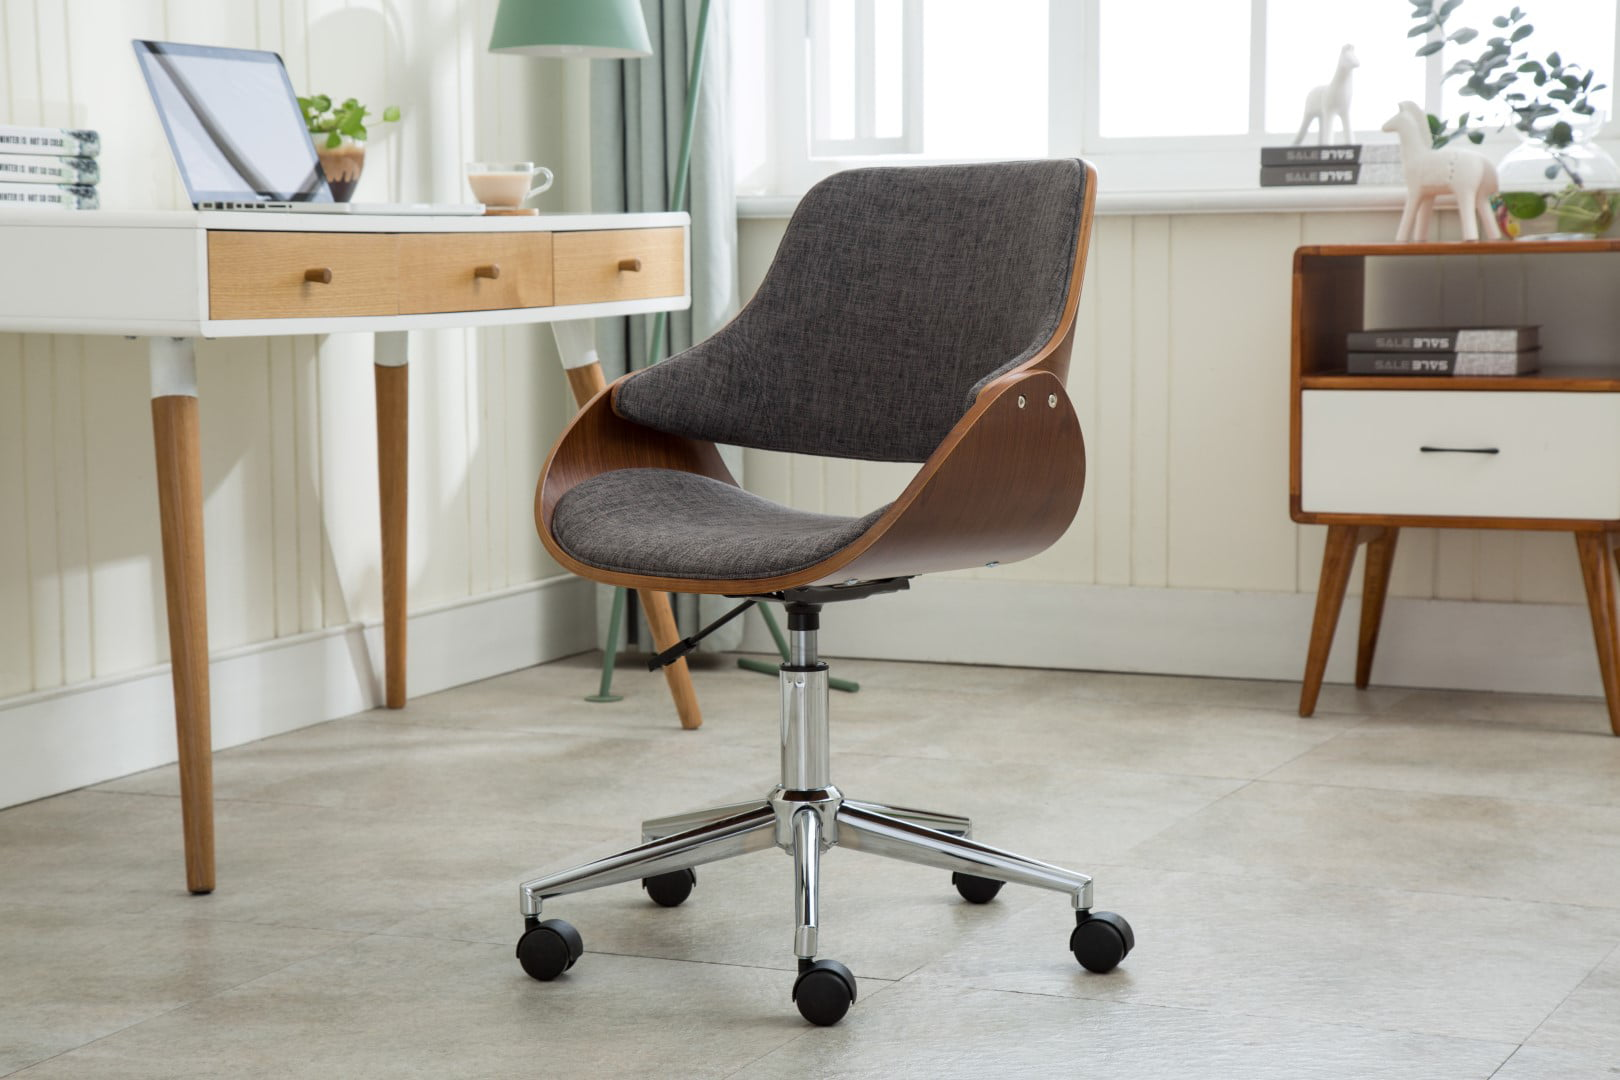 Image of: Porthos Home Adjustable Height Mid Century Modern Office Desk Chair Fabric And Wood With Caster Wheels Easy Assembly Walmart Com Walmart Com